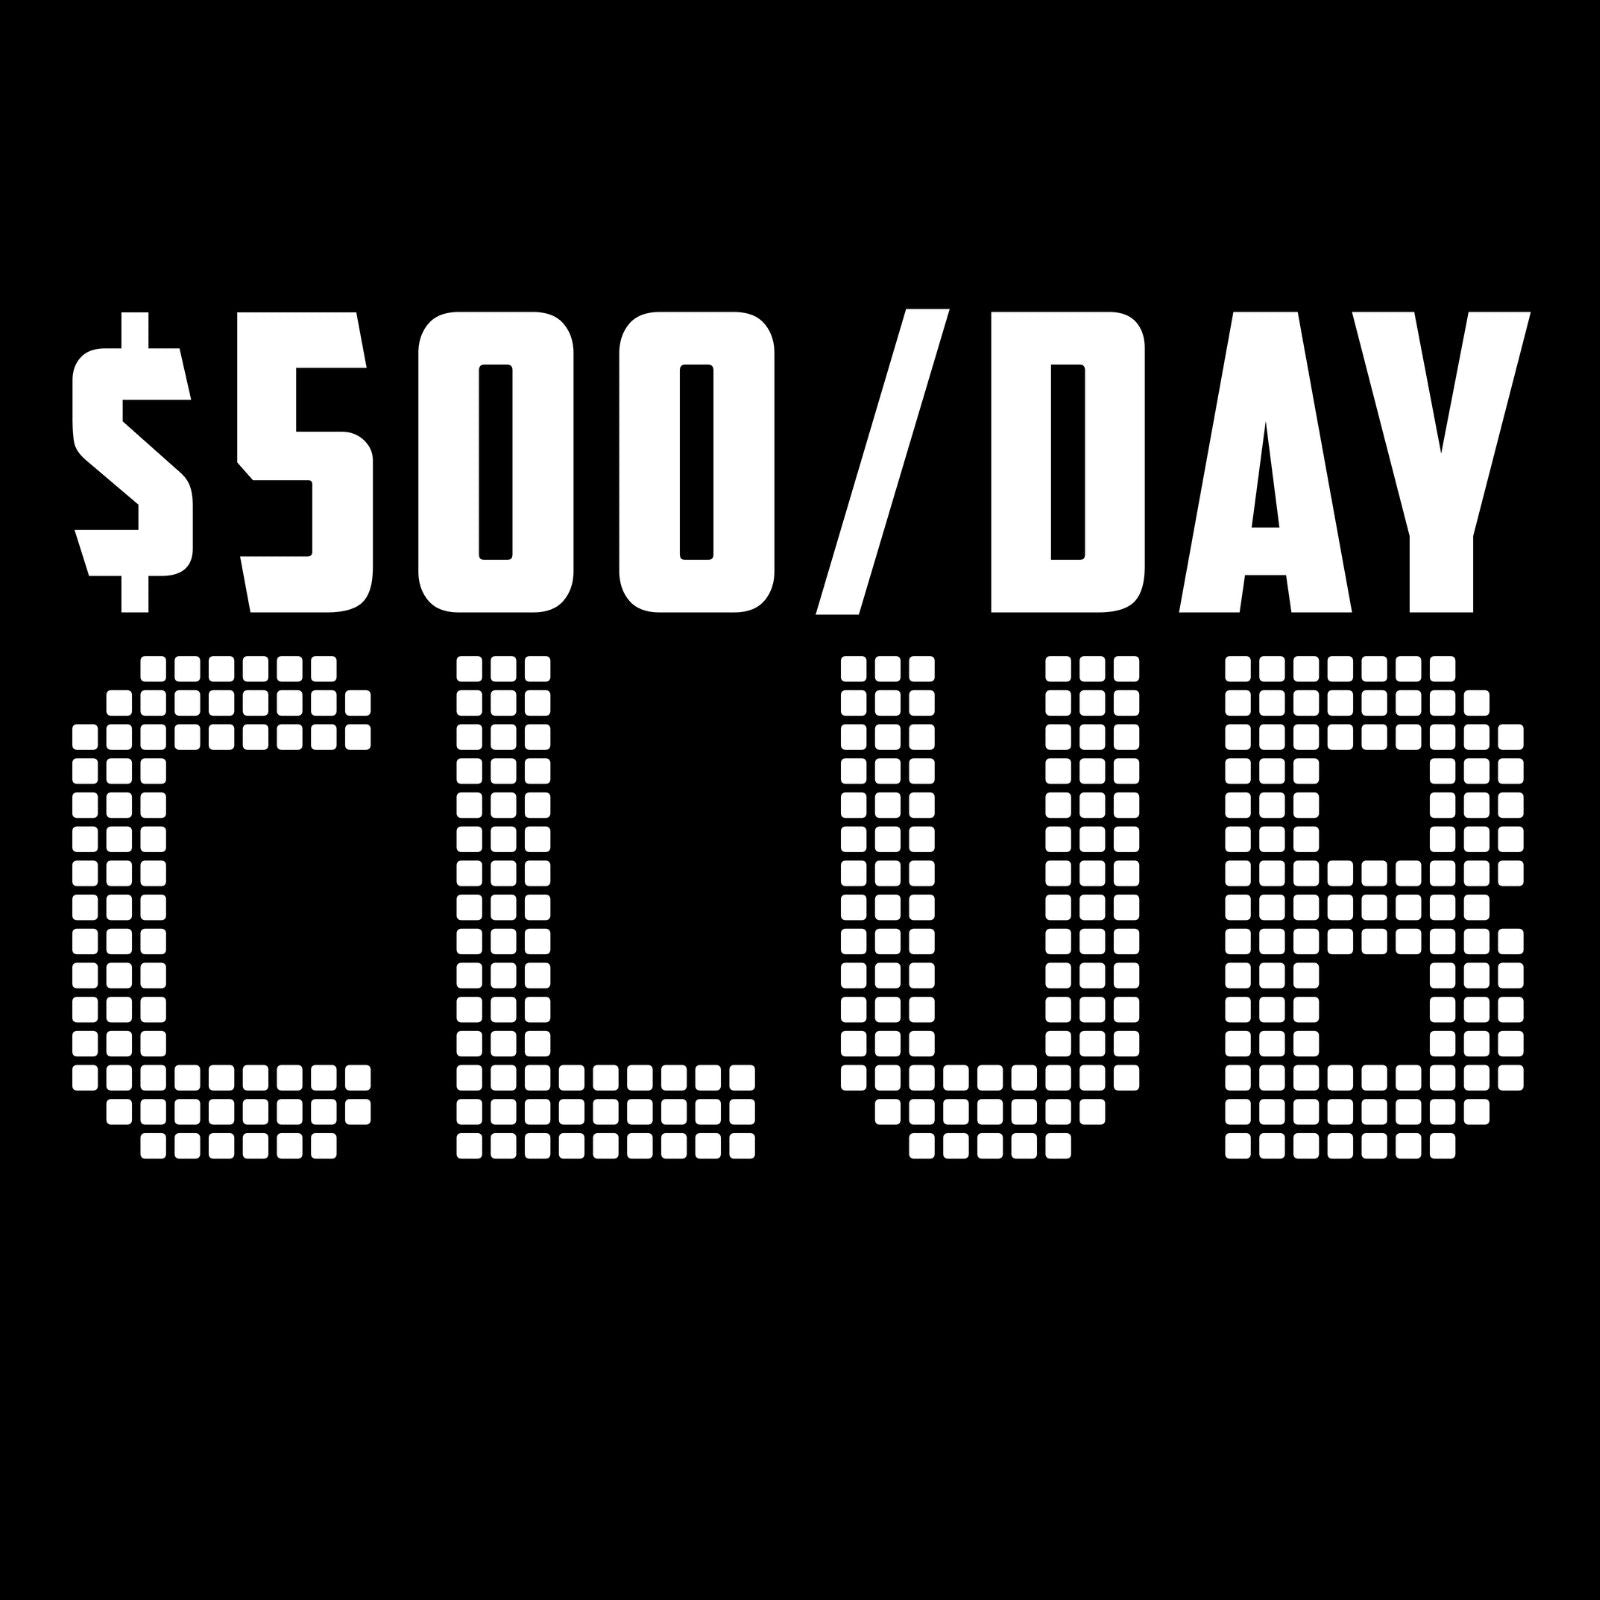 $500 A Day Club 3 - Bastard Graphics